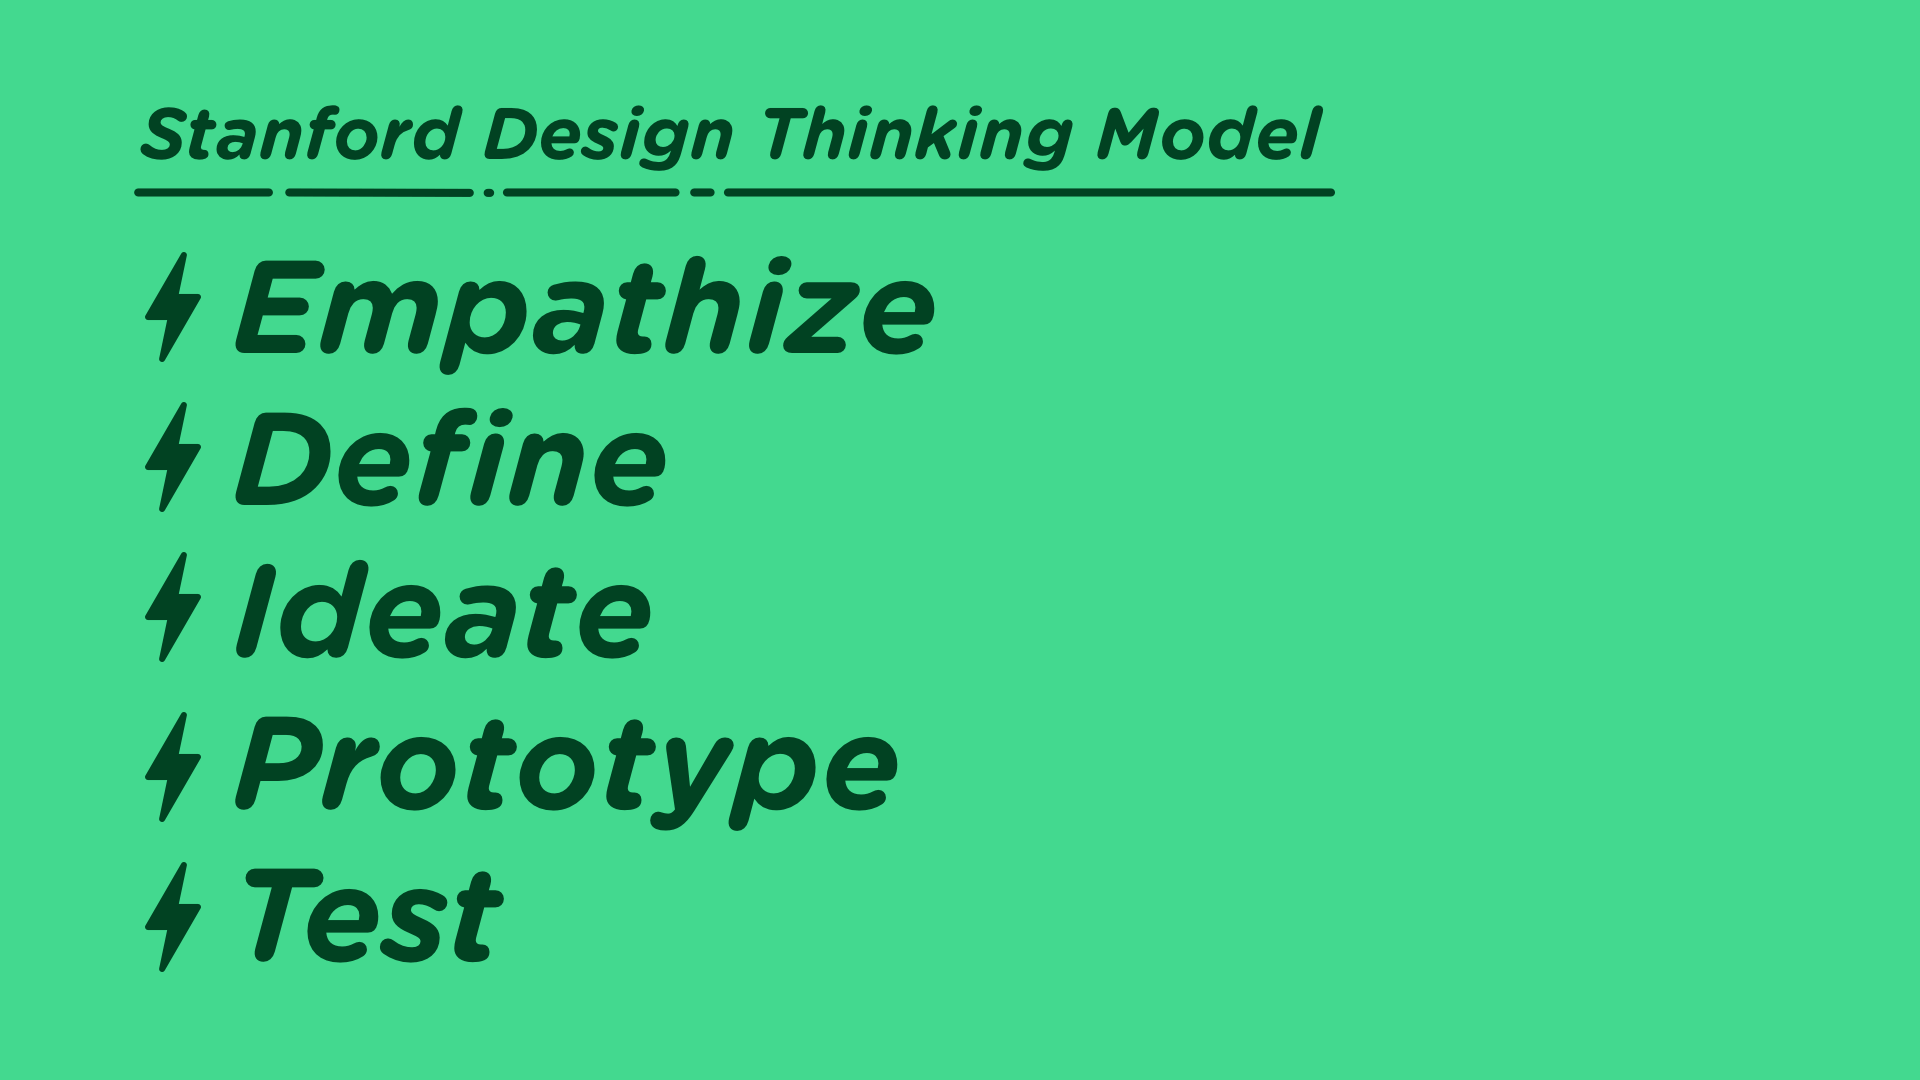 Stanford Design Thinking Model: Empathize, Define, Ideate, Prototype,